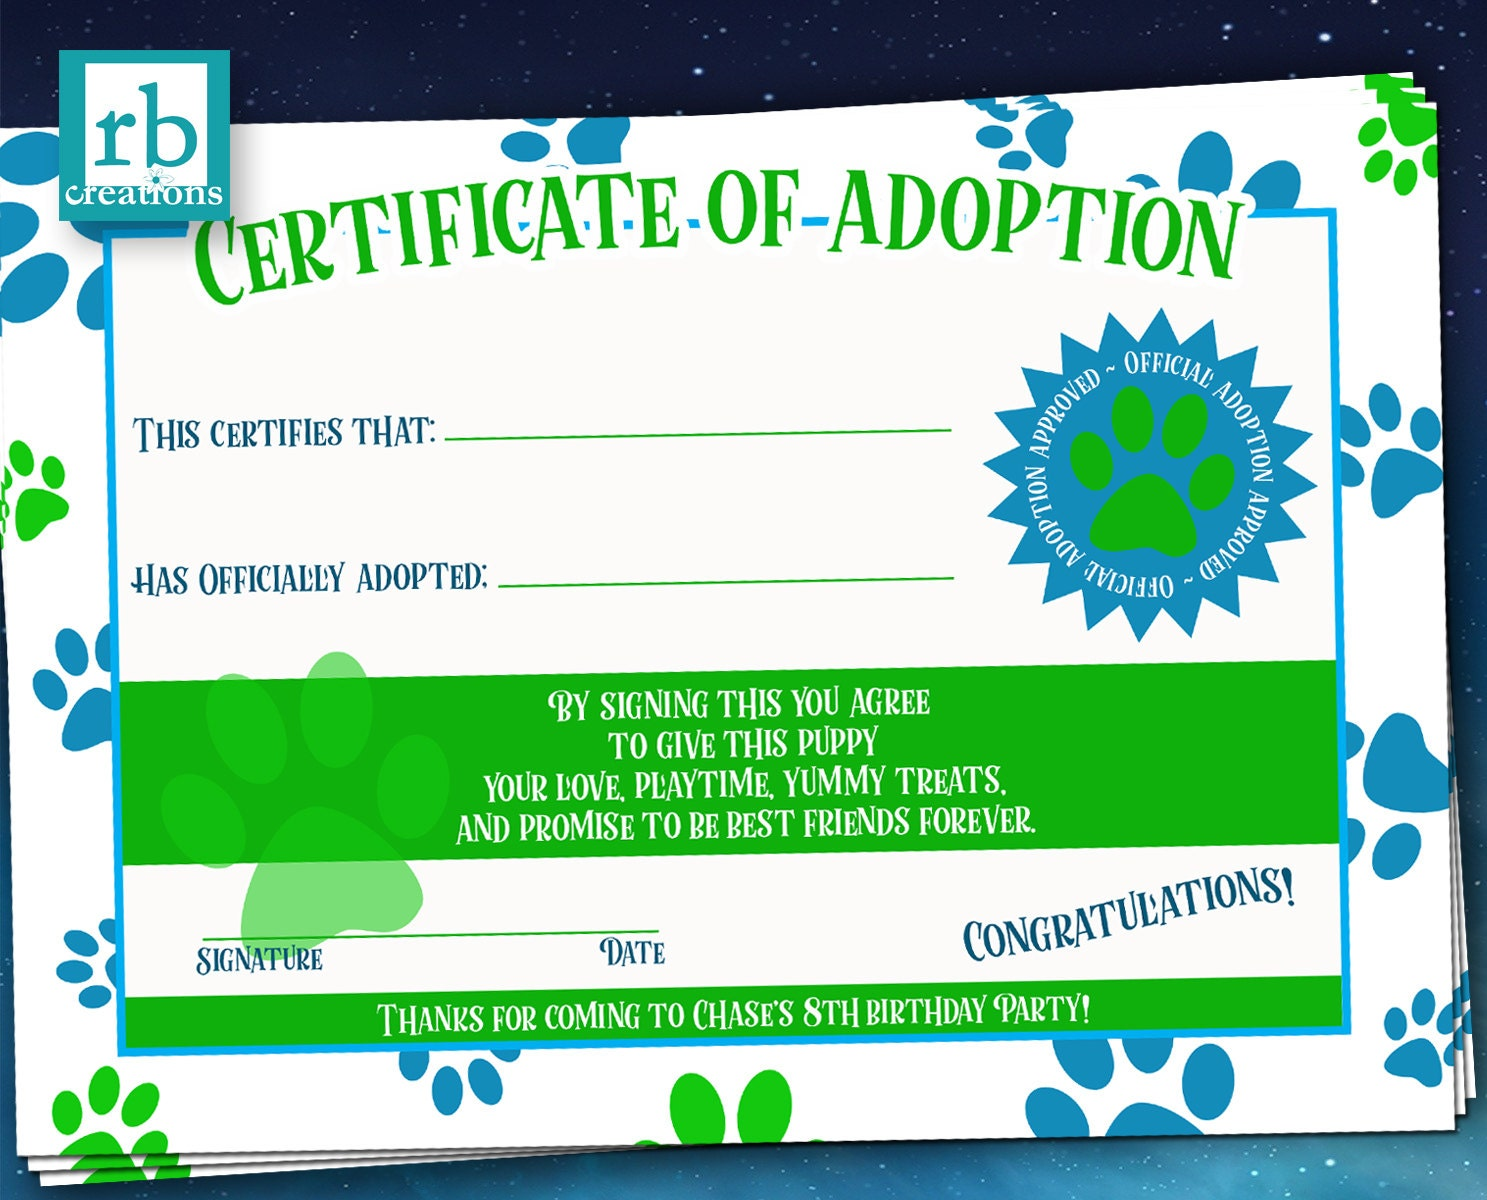 Puppy party adoption certificate puppy birthday puppy birthday puppy party adoption certificate puppy birthday puppy birthday certifcate puppy adoption certificate dog party favor digital printable xflitez Gallery